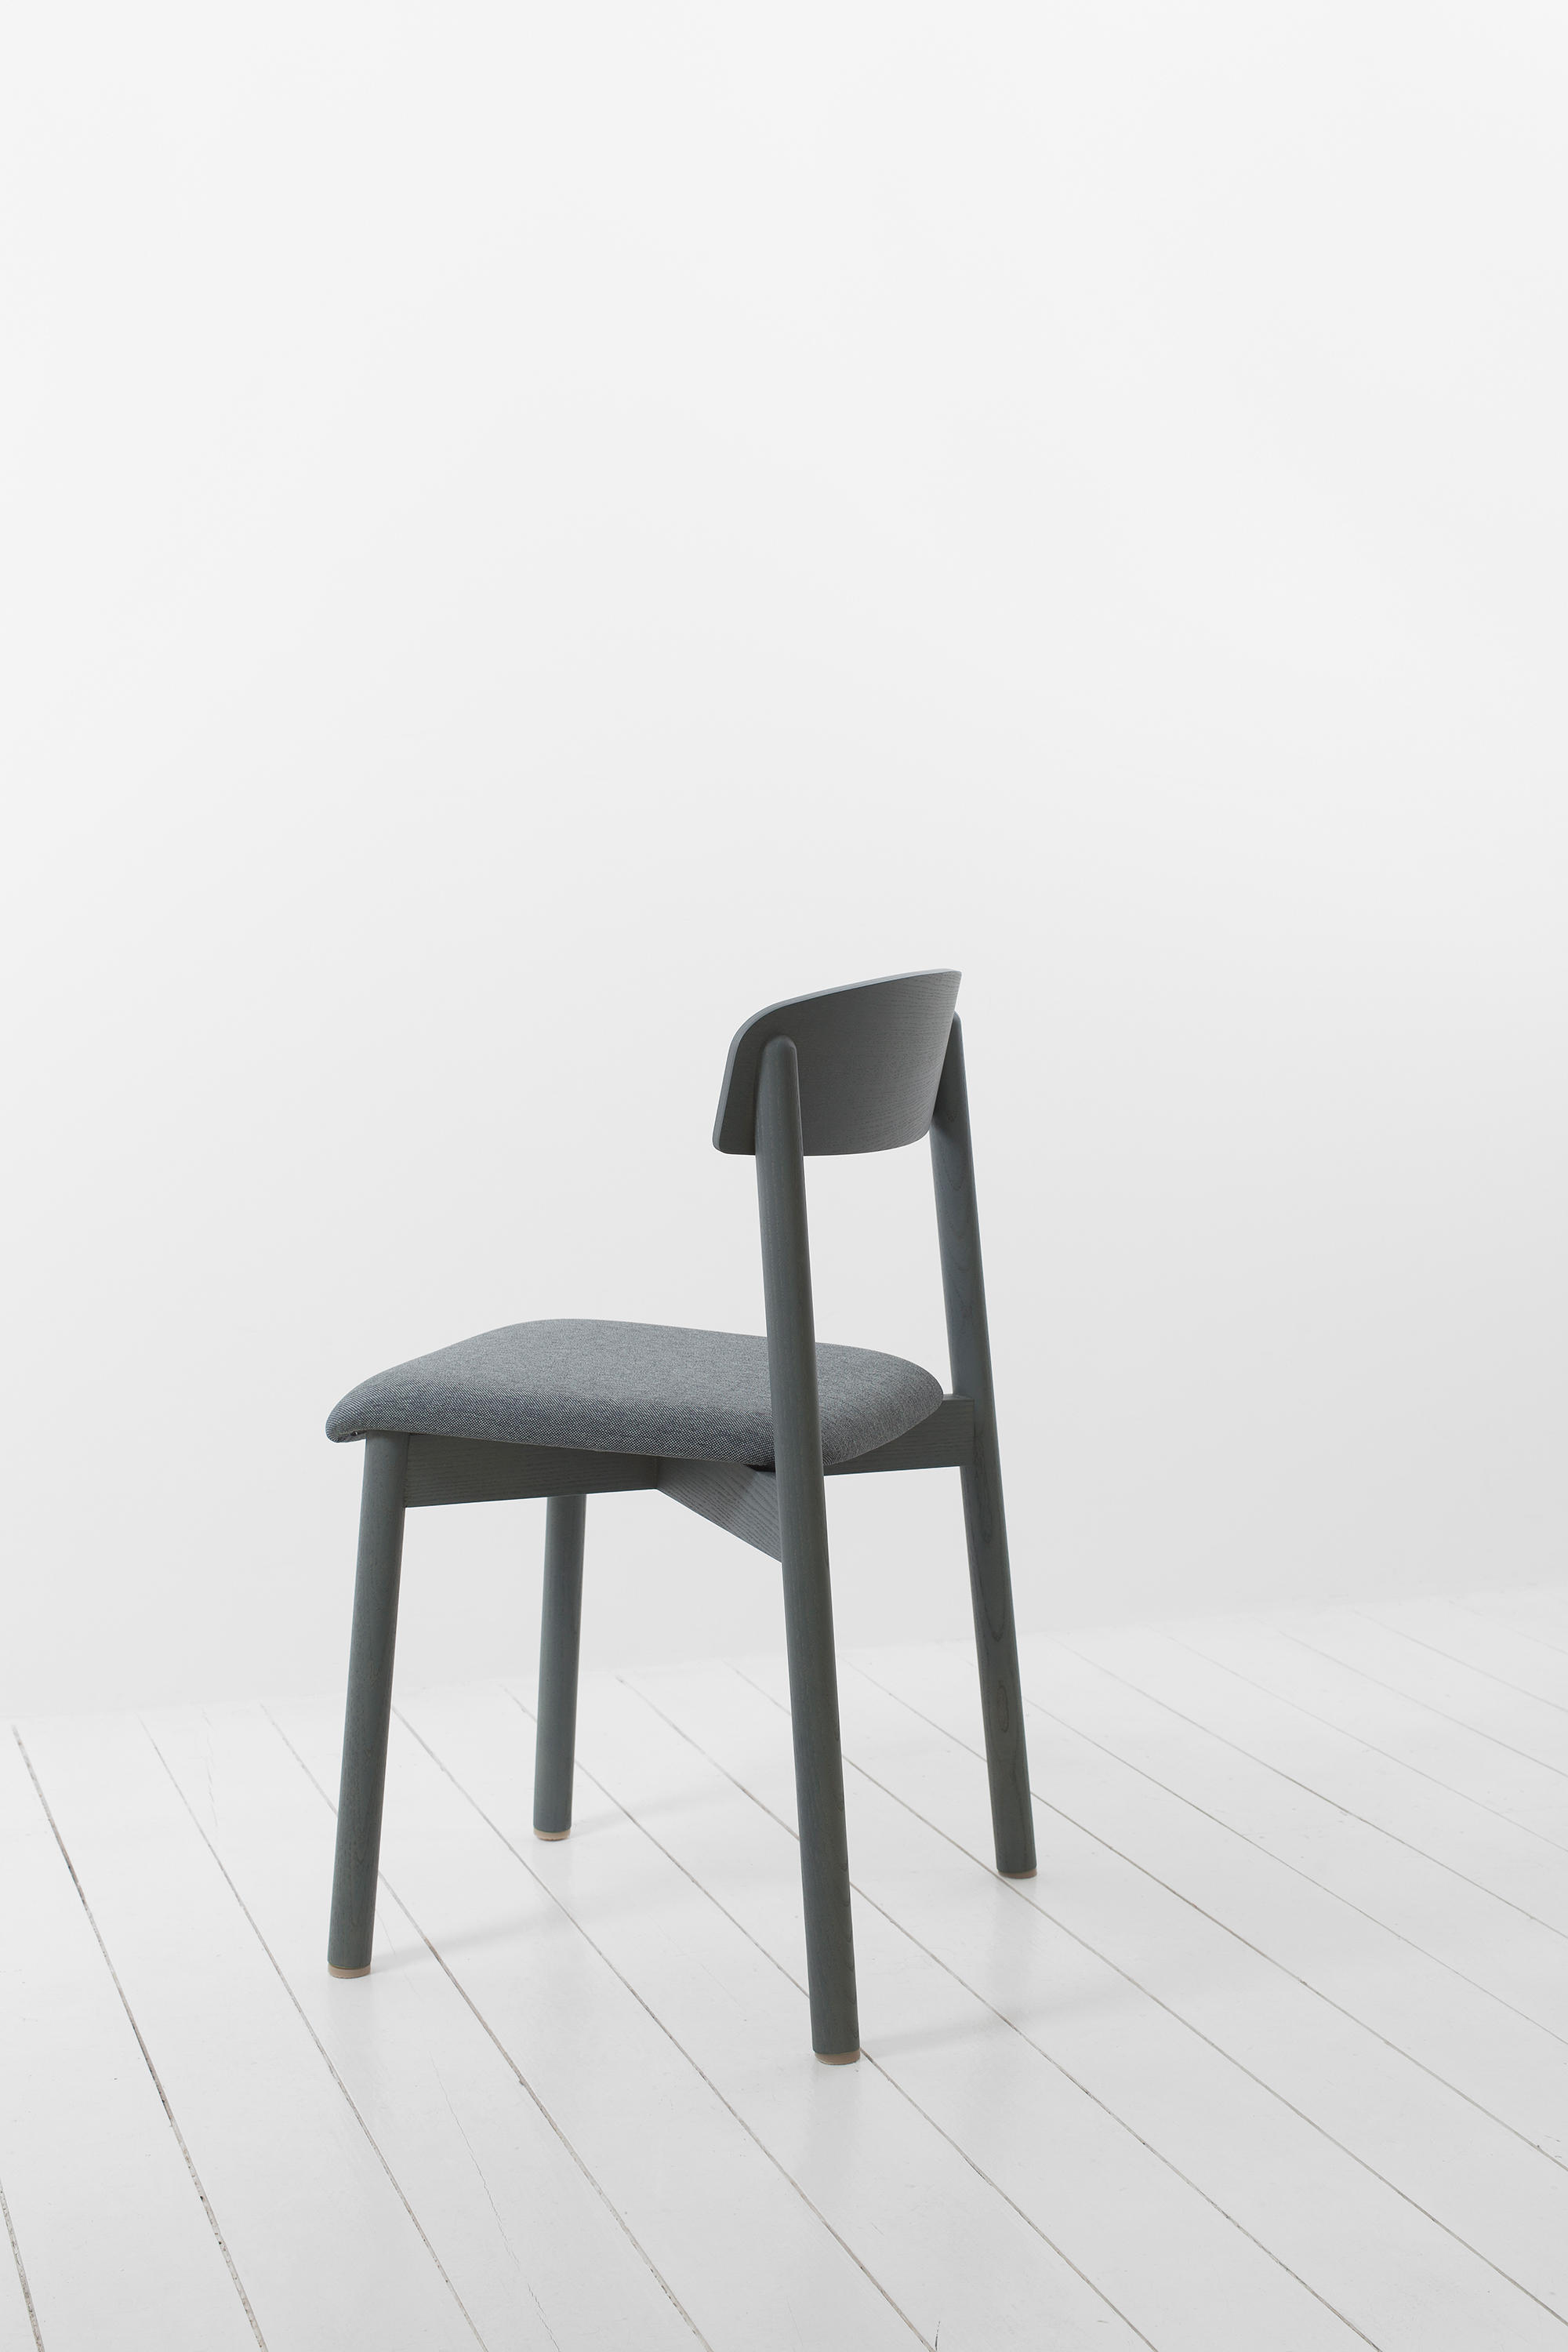 profile chair sillas multiusos de stattmann neue moebel architonic. Black Bedroom Furniture Sets. Home Design Ideas